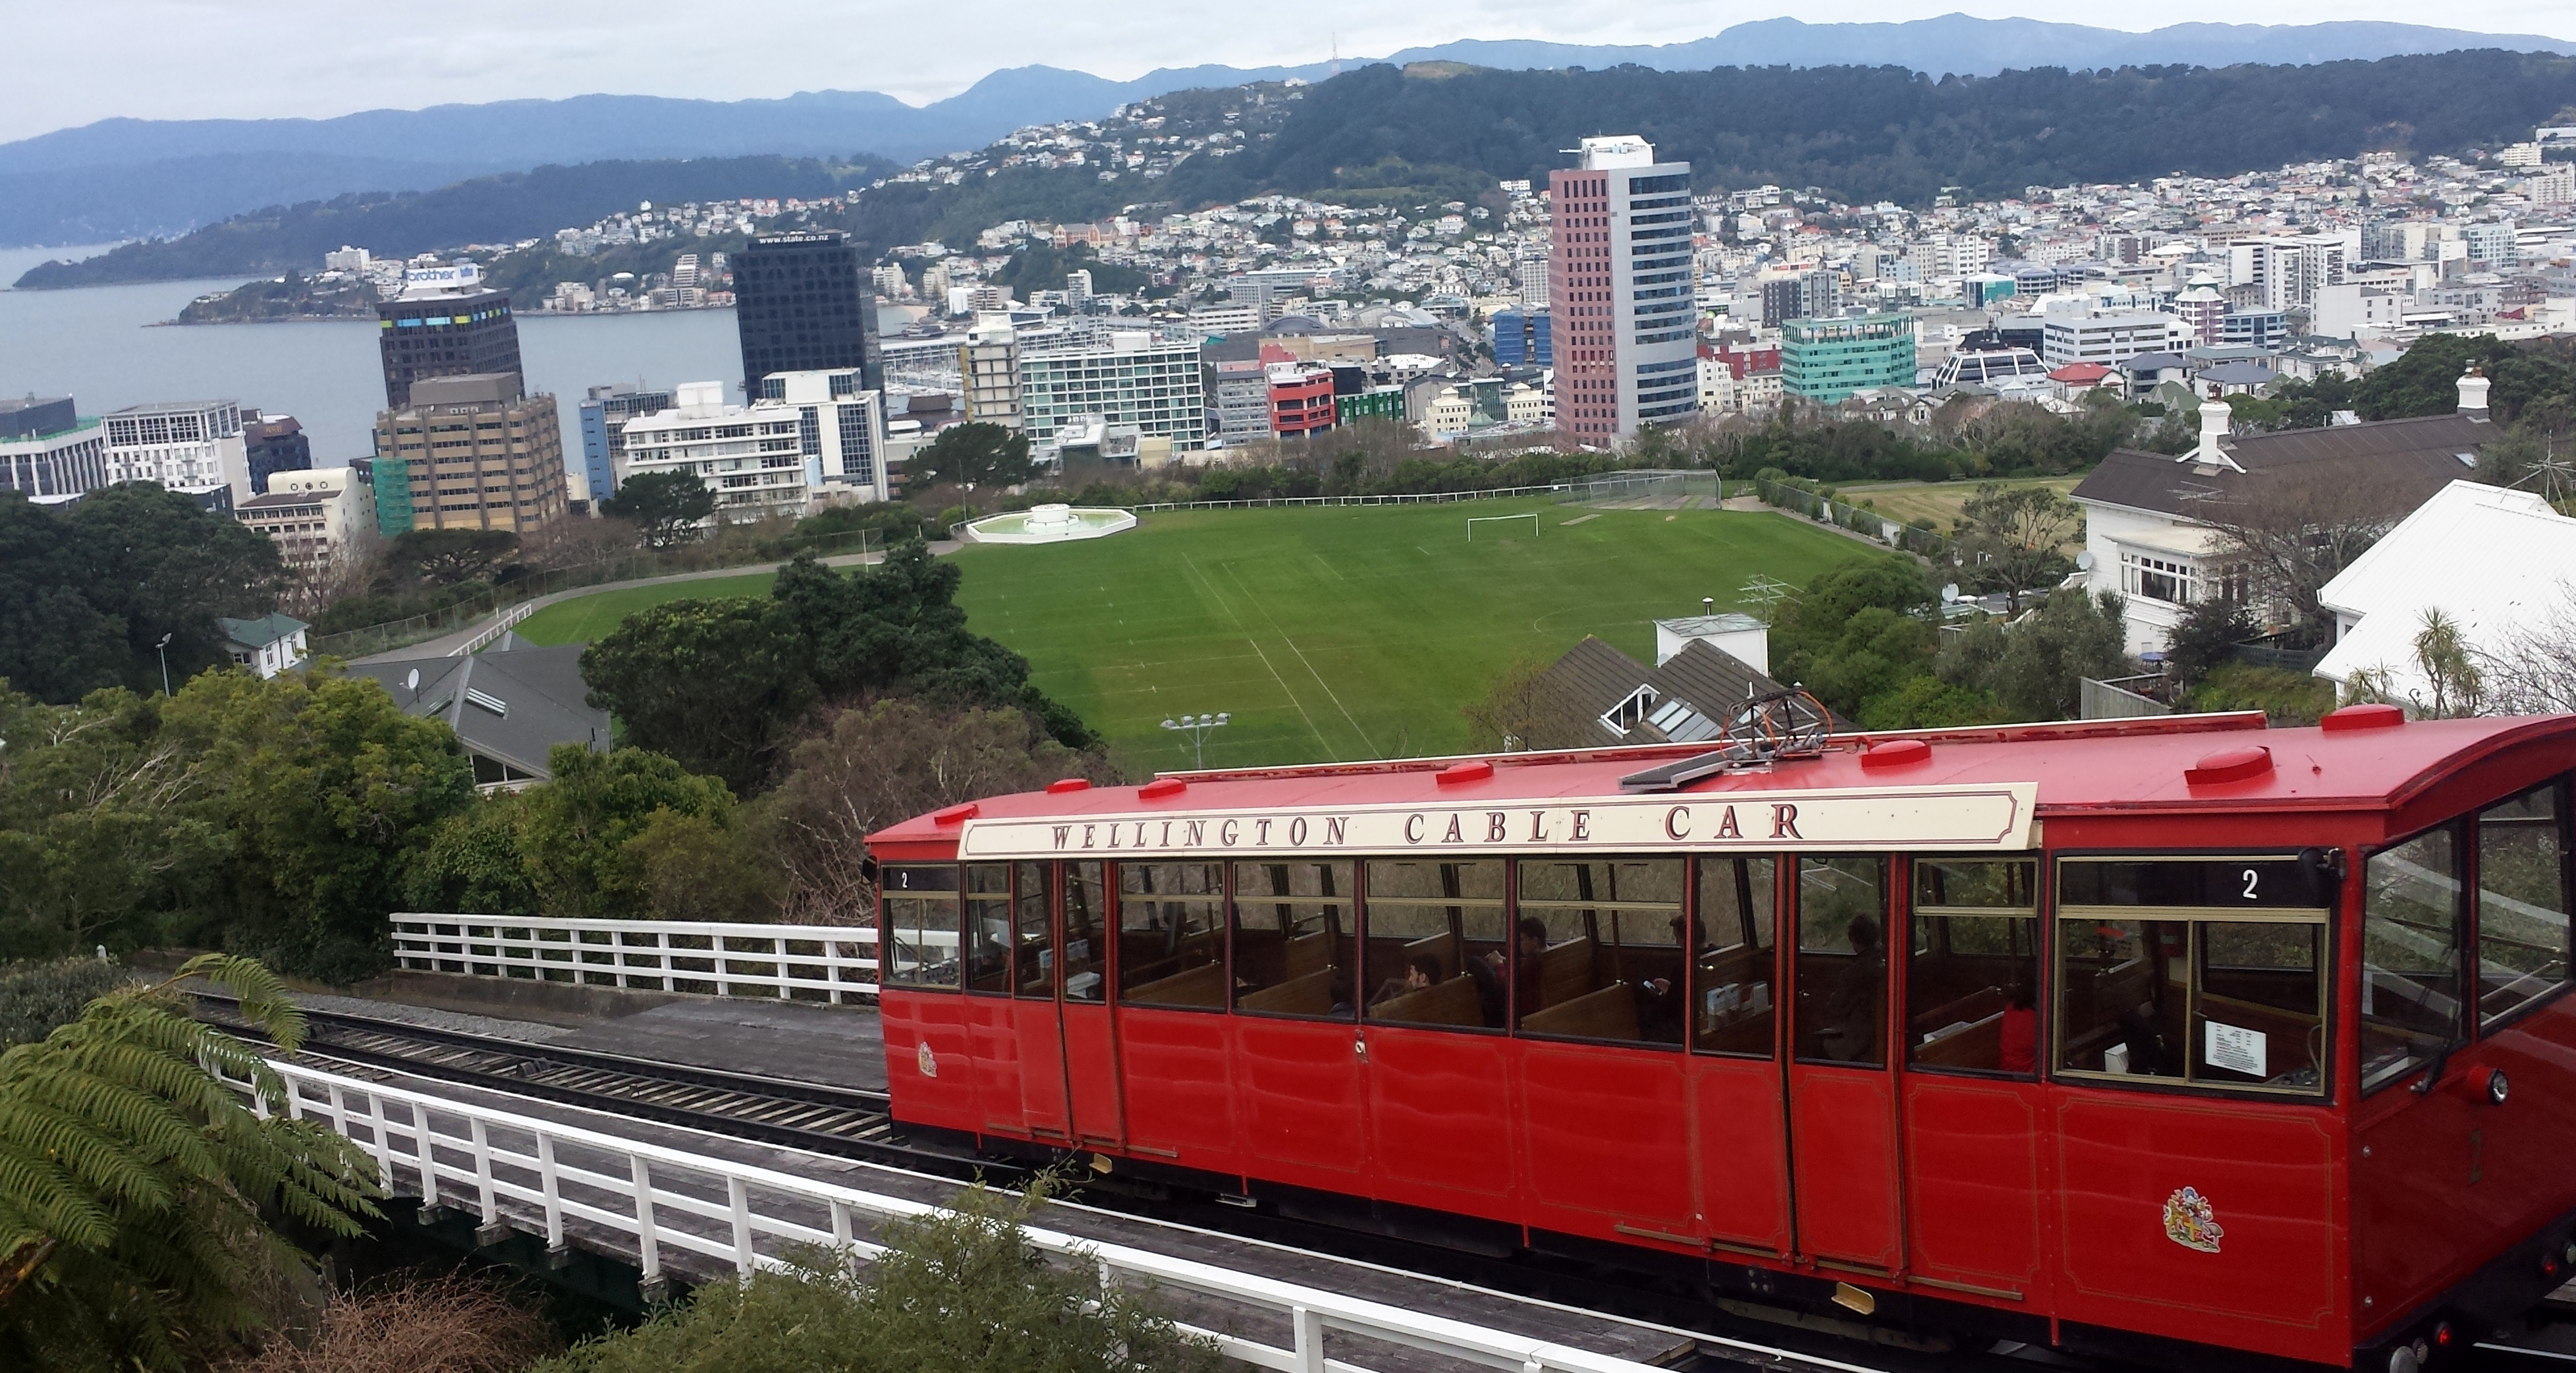 Wellington Cable Car: Exploring My Own Backyard